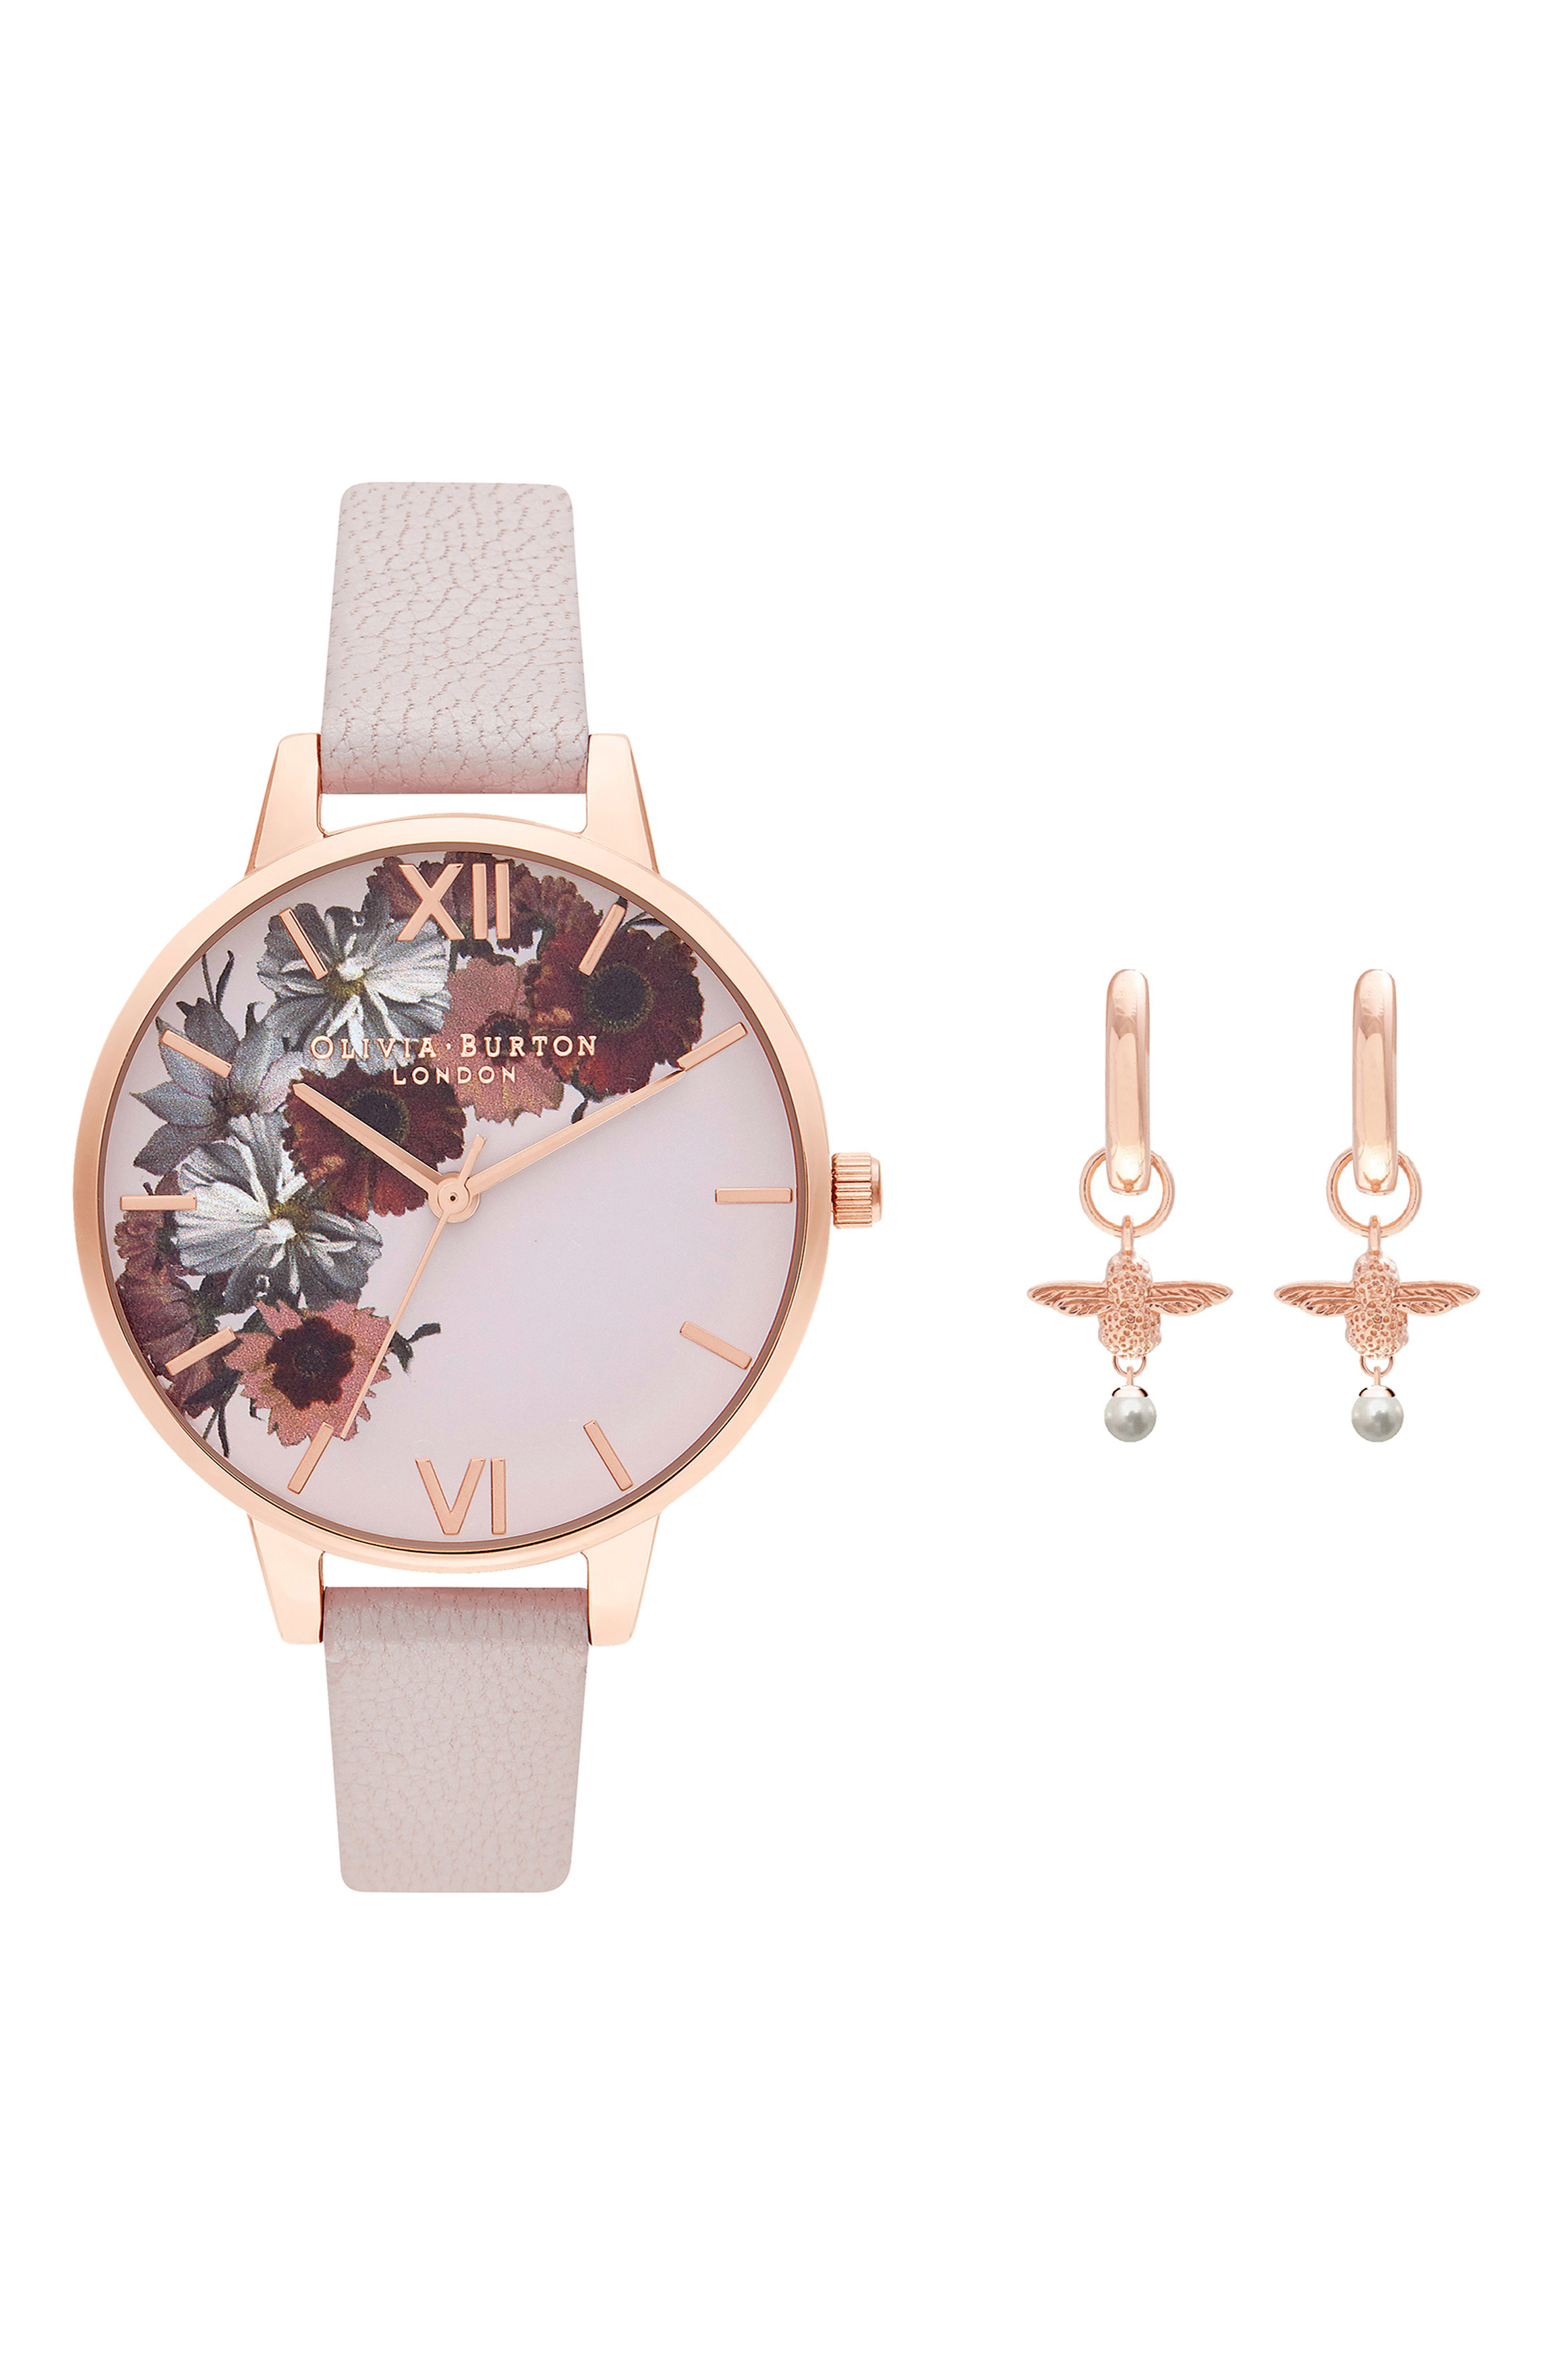 0cec4b3e8 Olivia Burton English Garden Leather Strap Watch Set, 34Mm In Pearl Pink/  Floral/